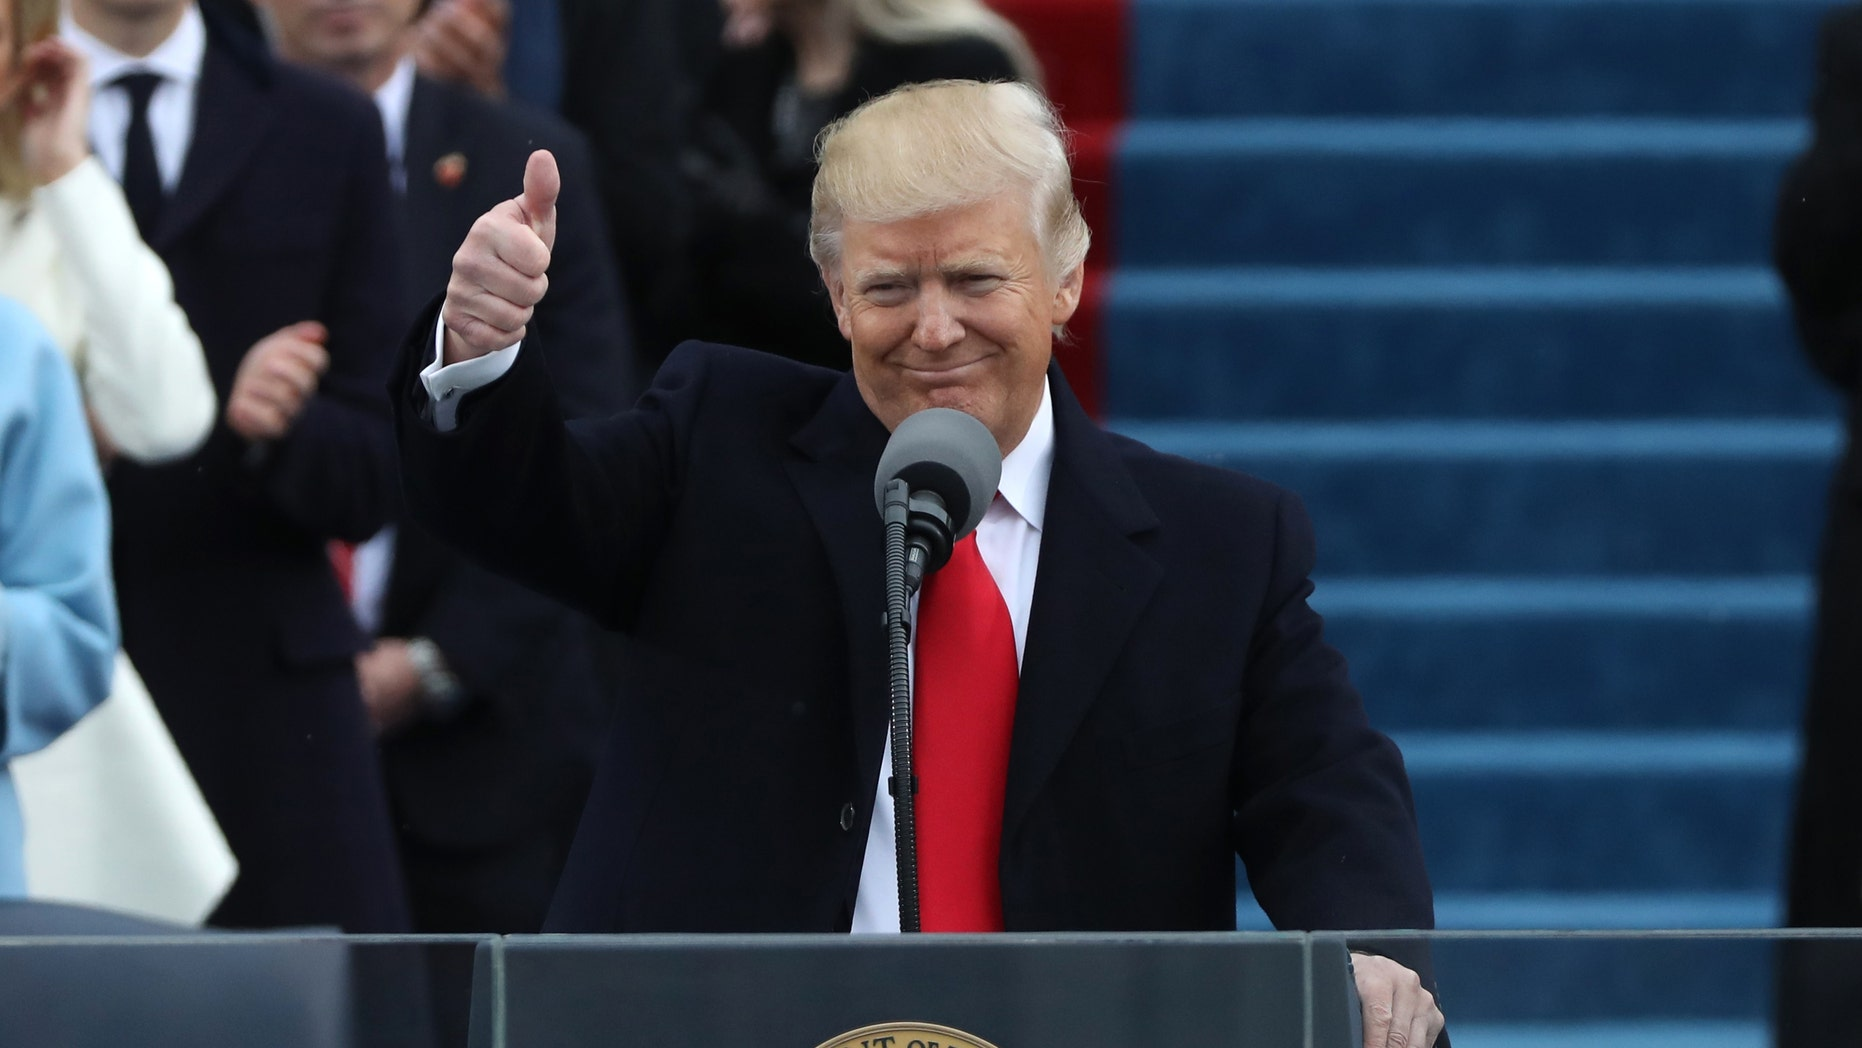 U.S. President Donald Trump gives a thumbs up after being sworn in as the 45th president of the United States on the West front of the U.S. Capitol in Washington, U.S., Jan. 20, 2017. (REUTERS/Carlos Barria)